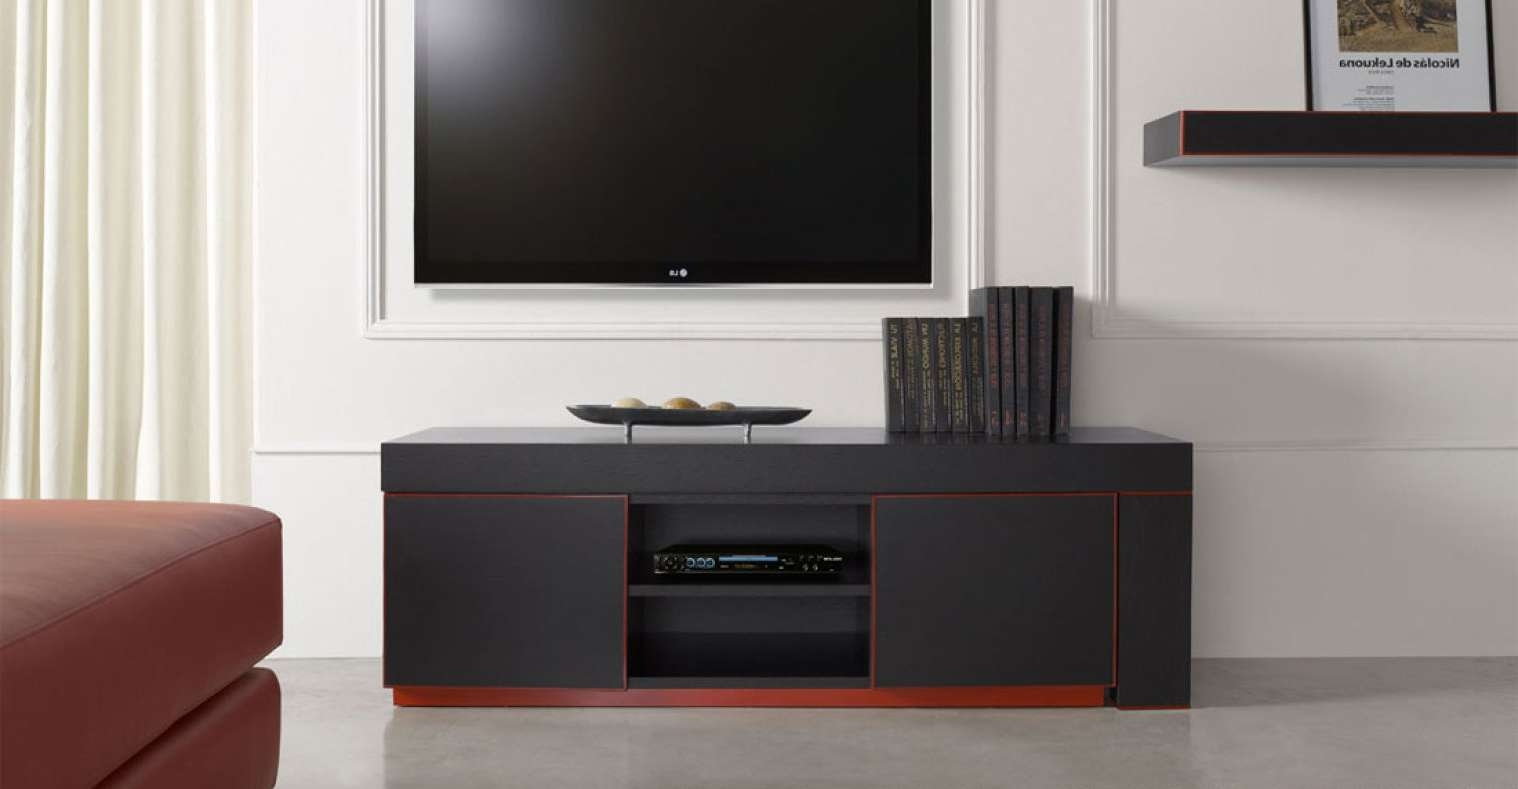 Tv : Awful Lockable Tv Stands Intriguing Lockable Tv Stands With Regard To Lockable Tv Stands (View 6 of 20)